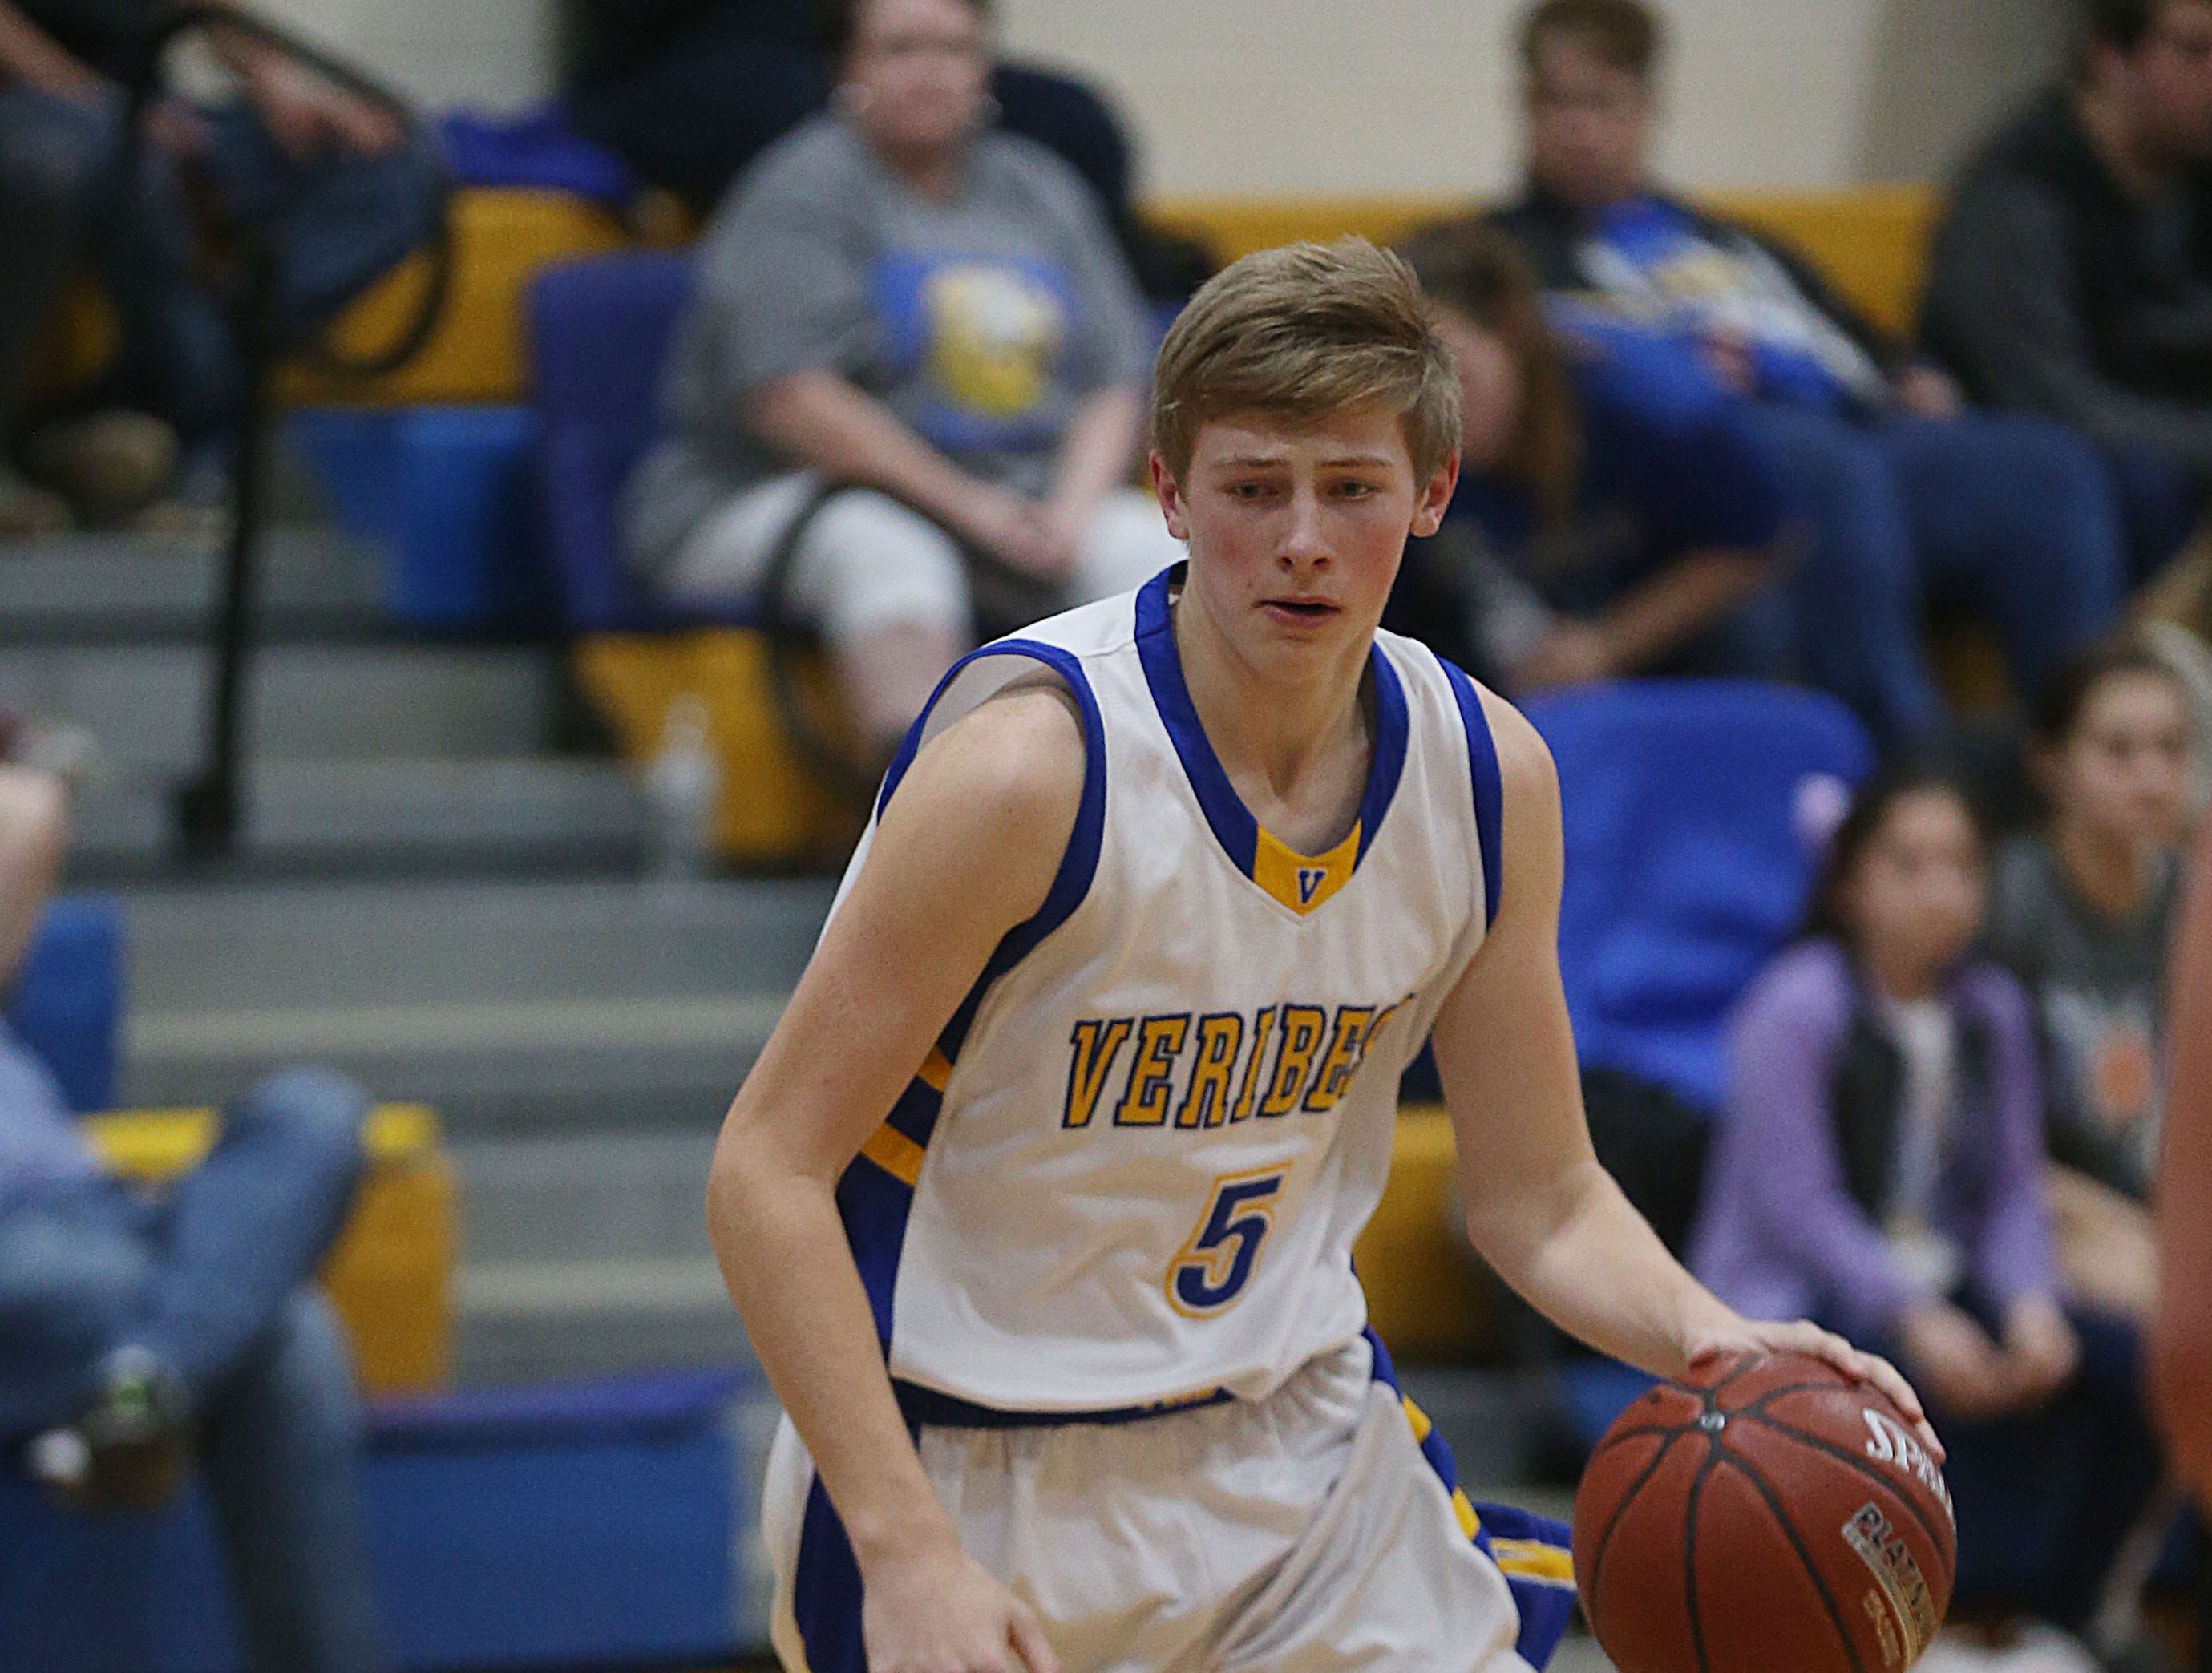 Veribest's Bo Dunn (#5) makes a move toward the basket Tuesday, Jan. 8, 2019 during the game against Water Valley in Veribest.